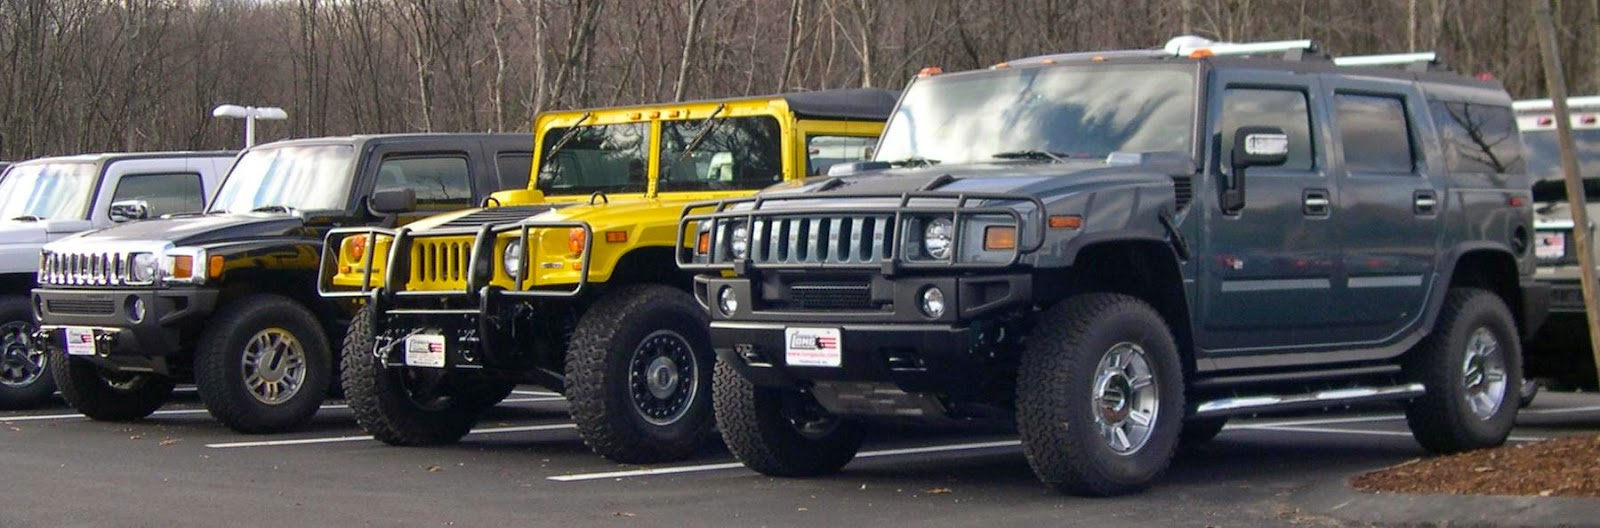 From left Hummer H3, H1, and H2